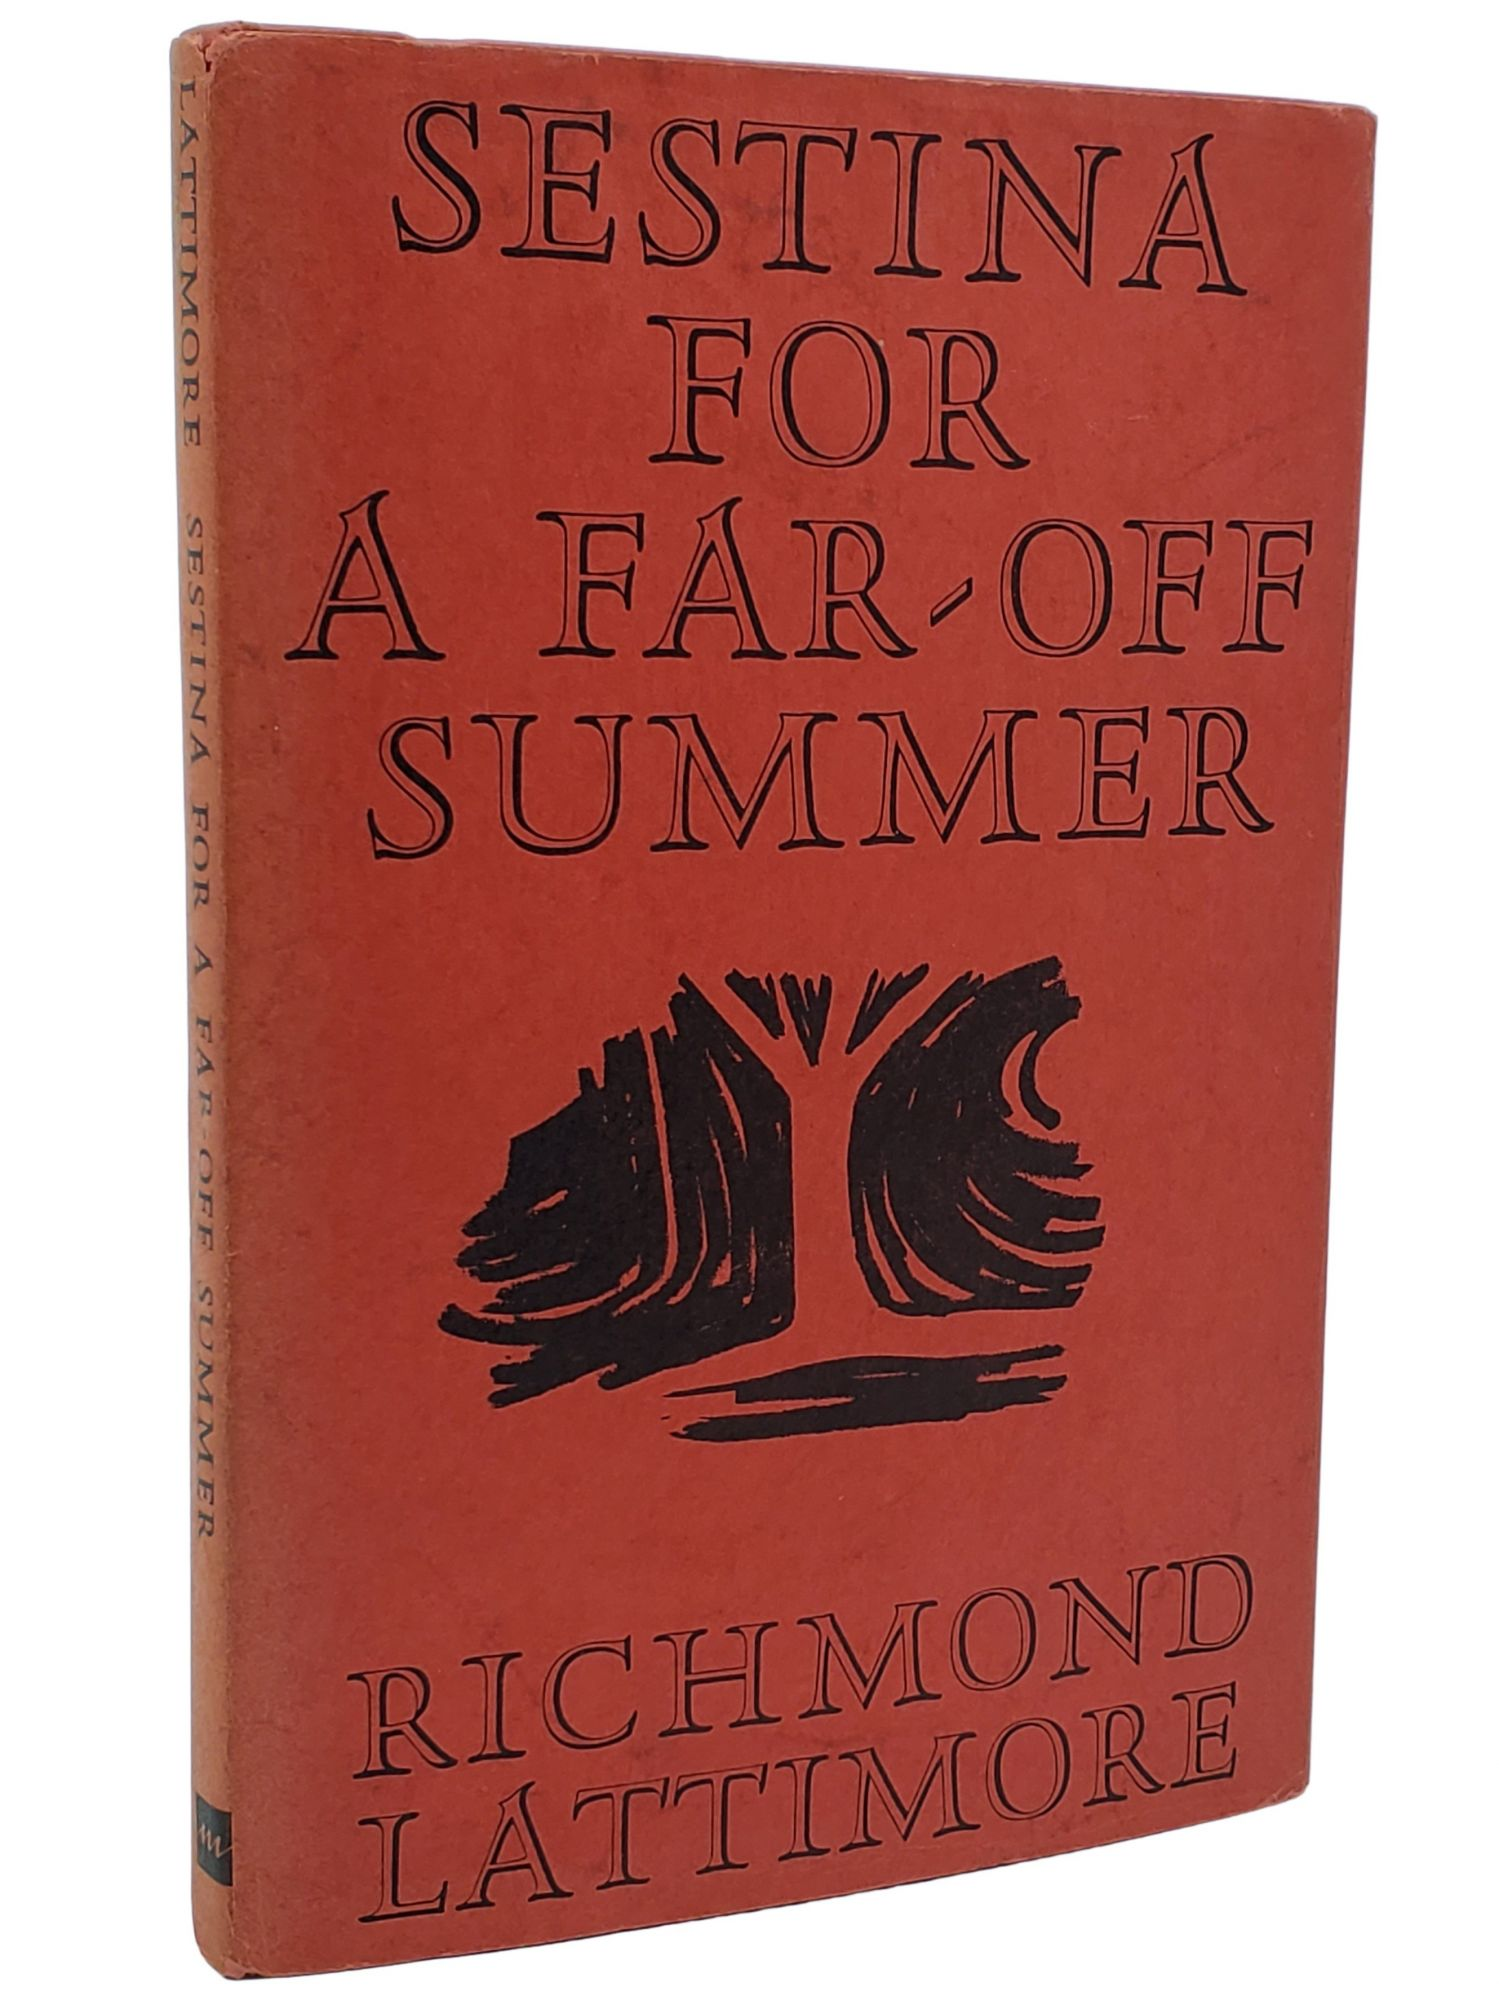 SESTINA FOR A FAR-OFF SUMMER. Richmond Lattimore.